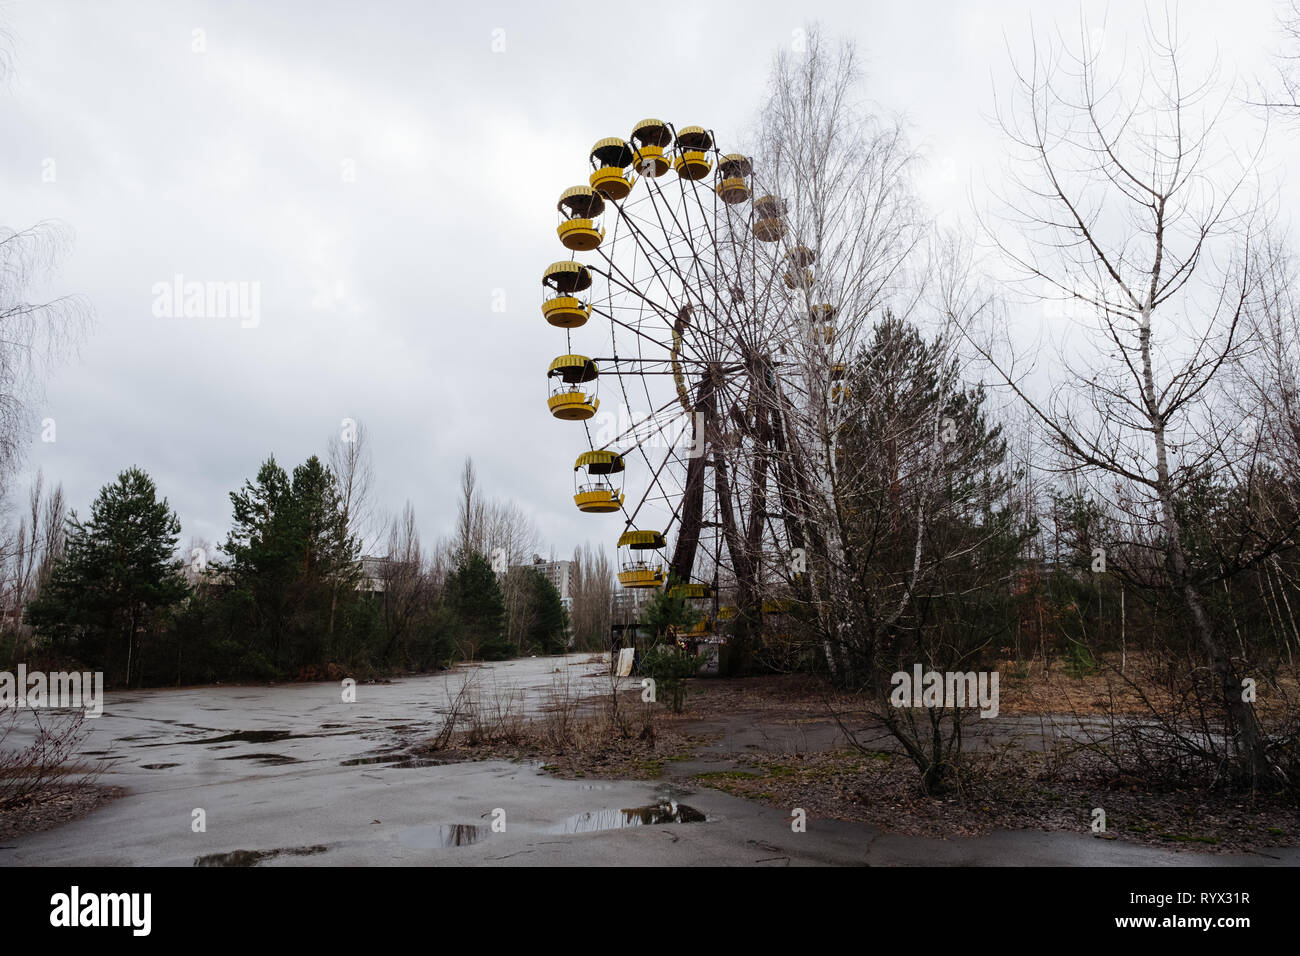 Ferris wheel part of the never opened amusement park in the abandoned city of Pripyat, Chernobyl nuclear power plant disaster exclusion zone, Ukraine. - Stock Image